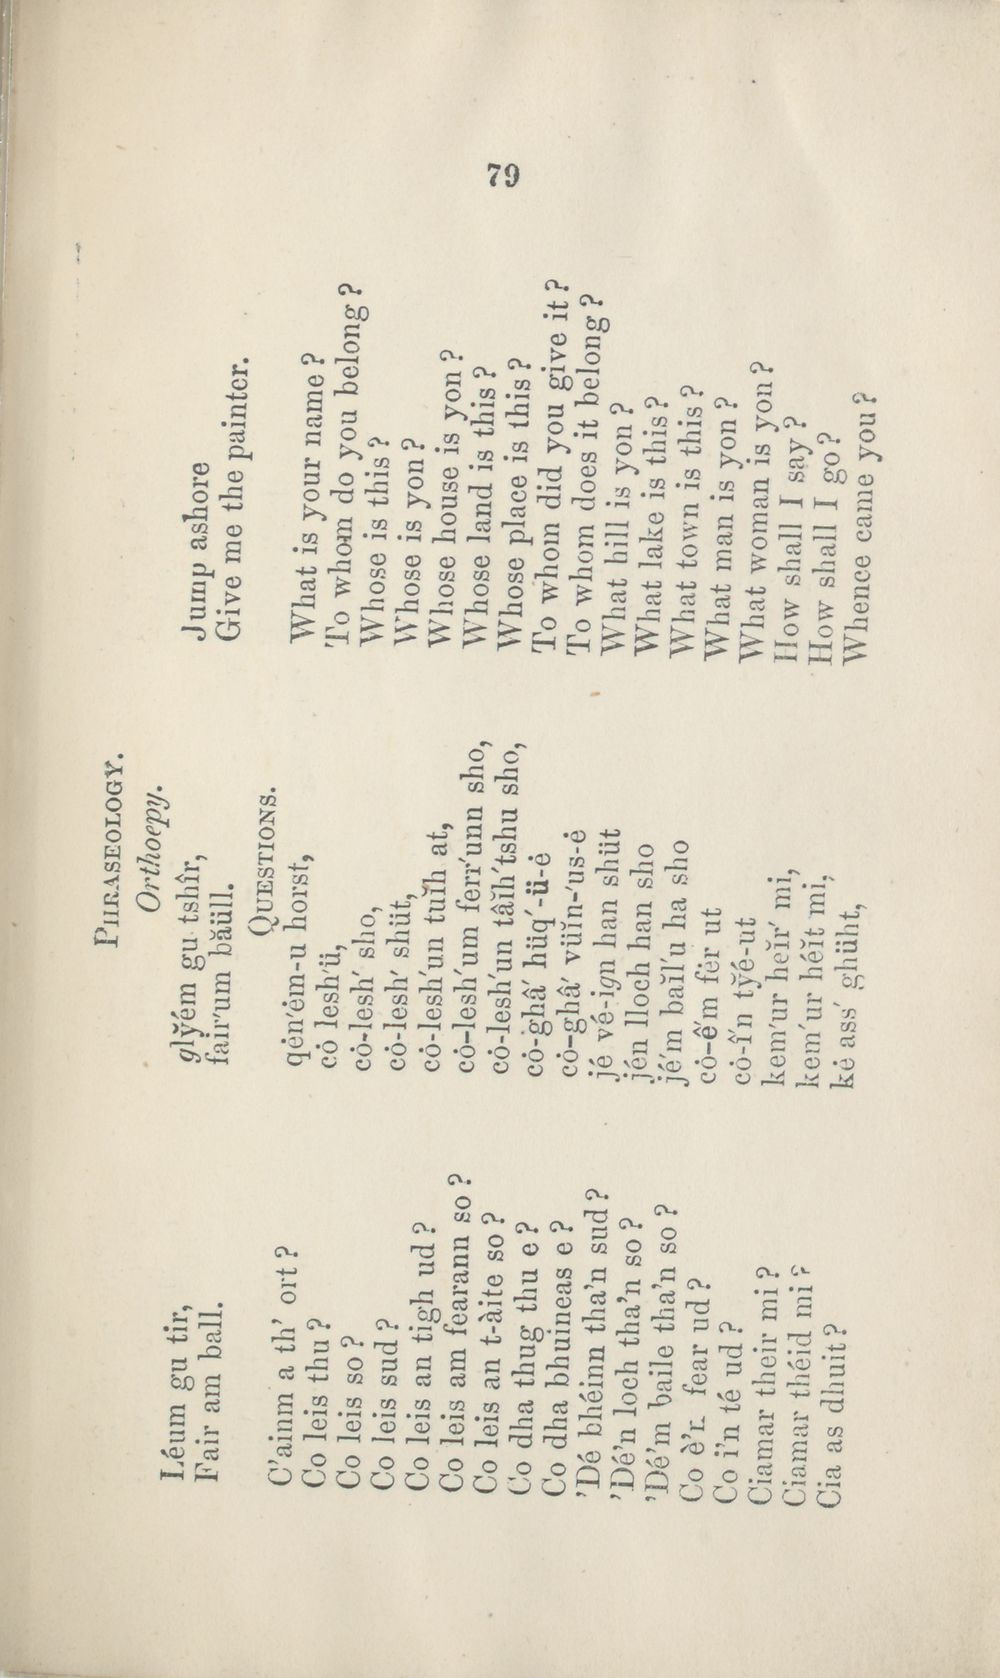 83) Page 79 - Books and other items printed in Gaelic from